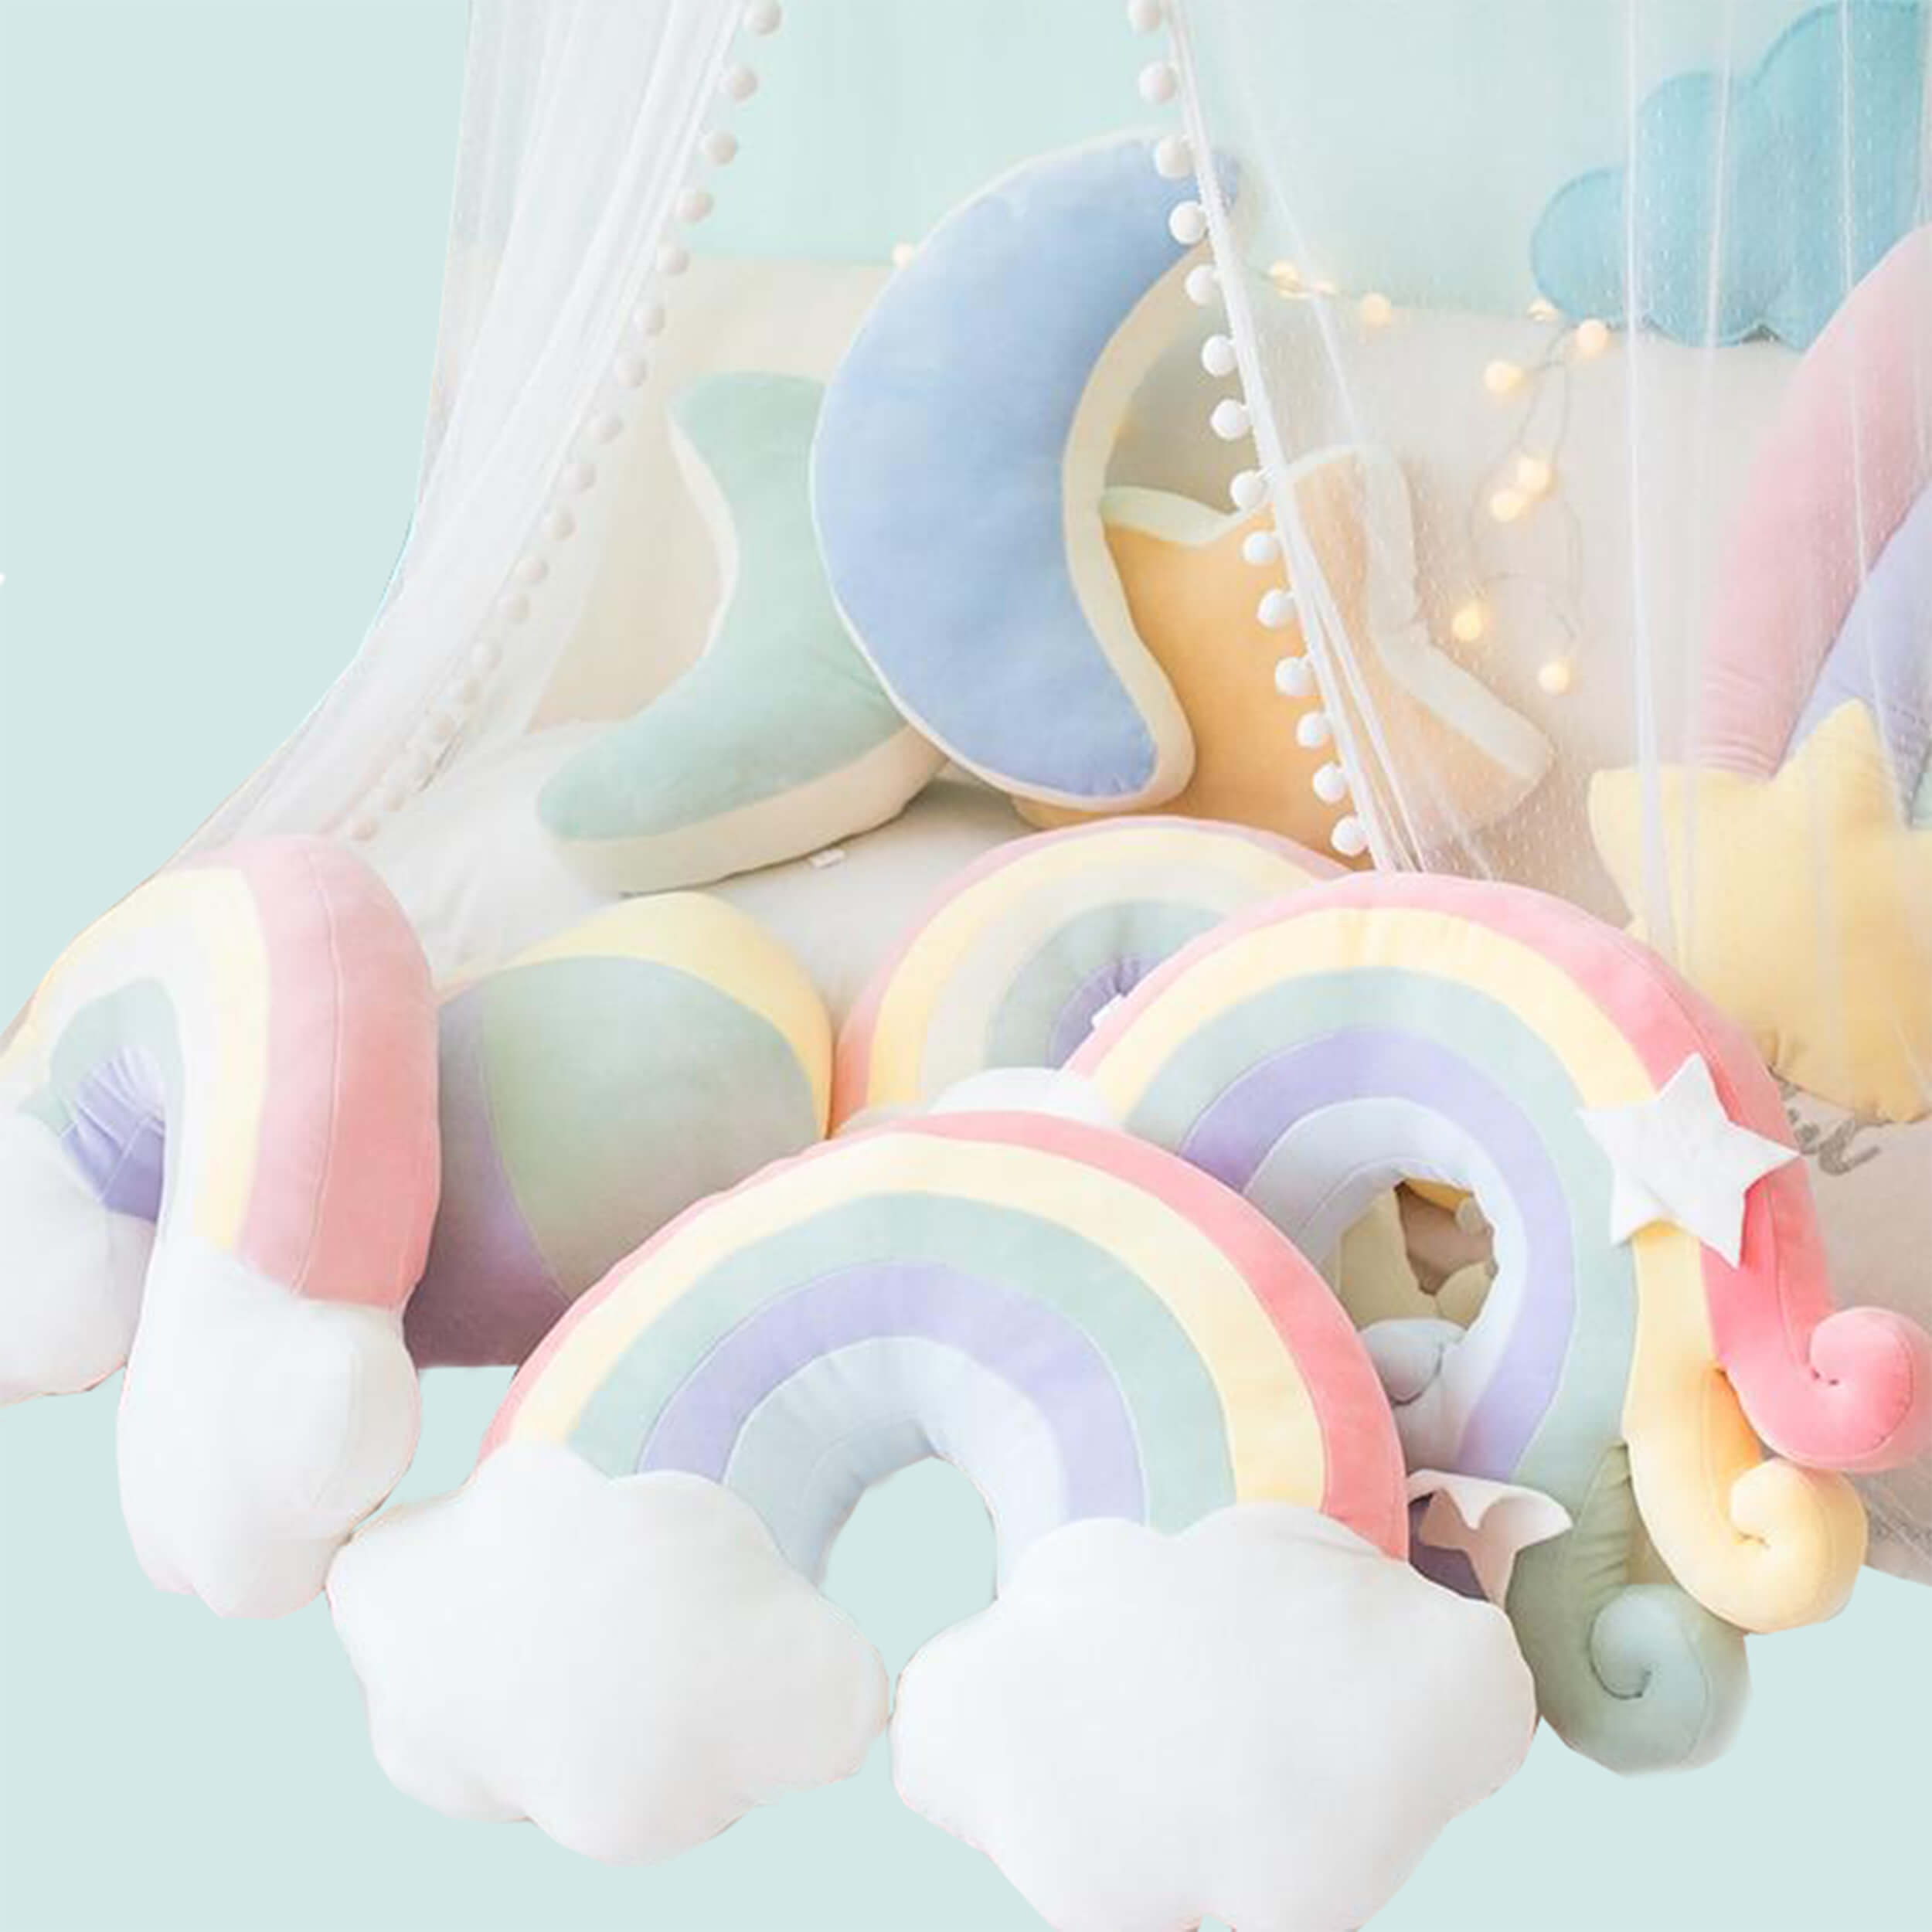 Cuddly Candy Coloured Pillows